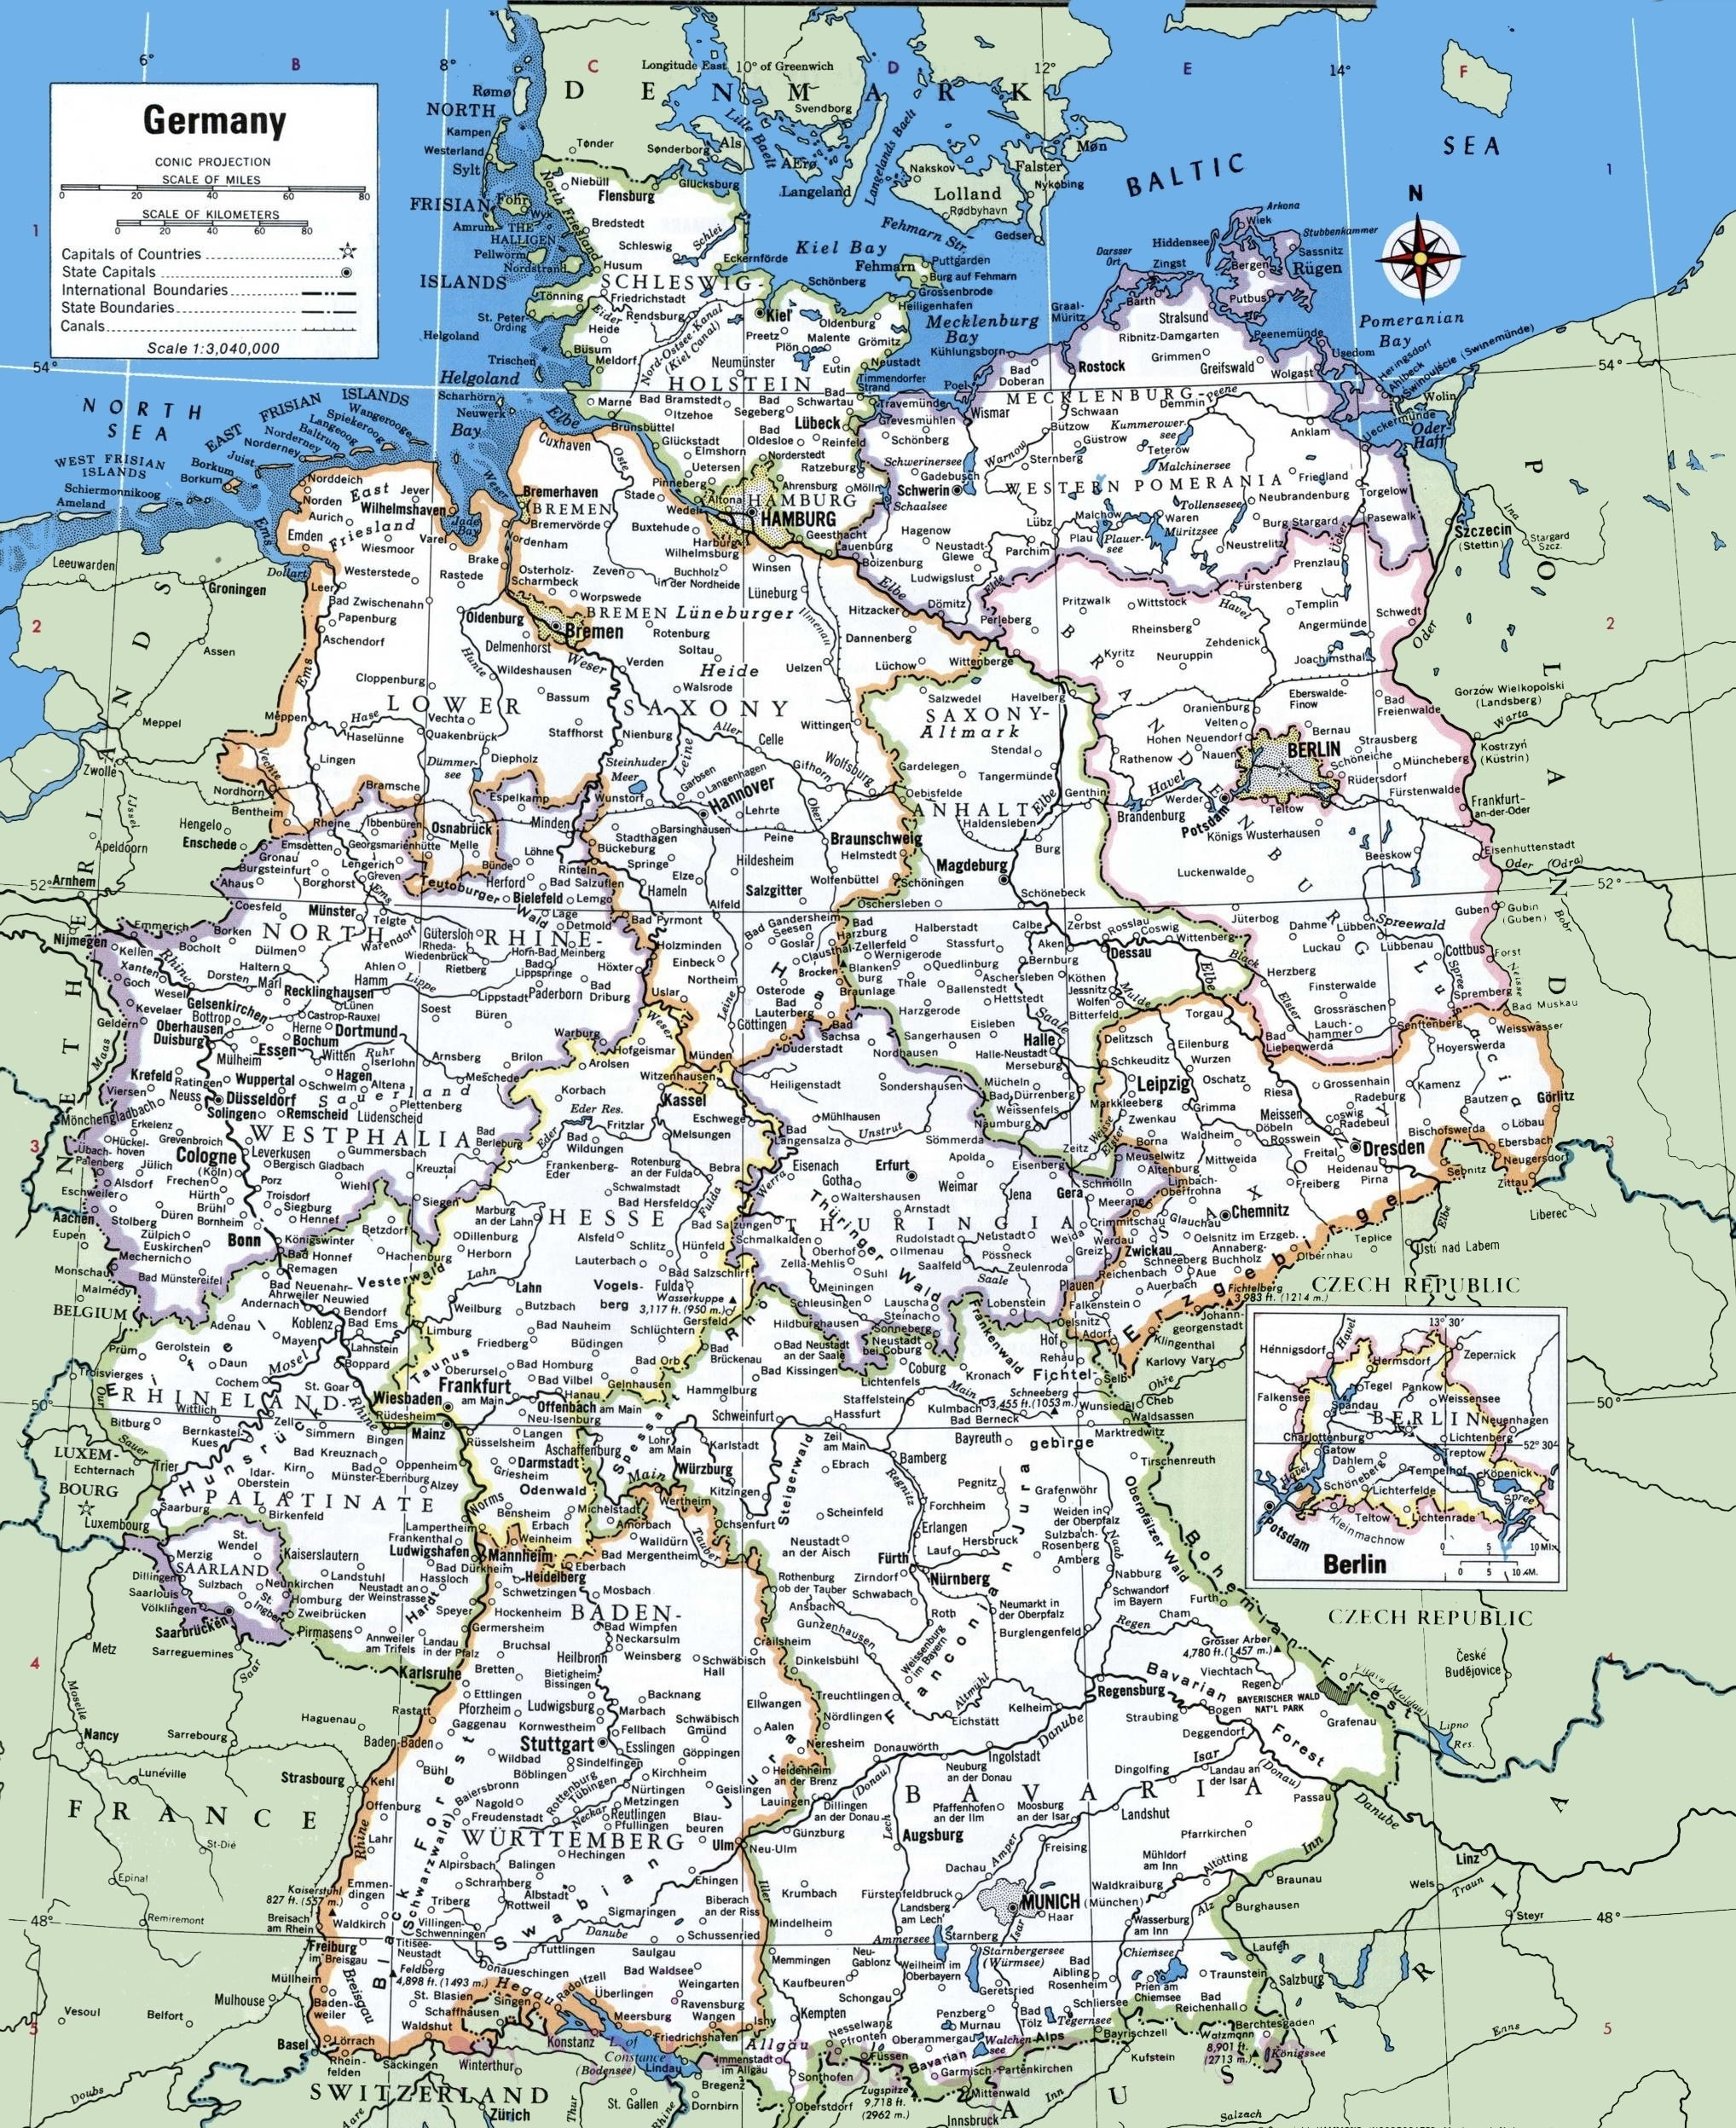 Printable Map Of Germany With Cities And Towns | Printable Maps | A throughout Printable Map Of Germany And Surrounding Countries